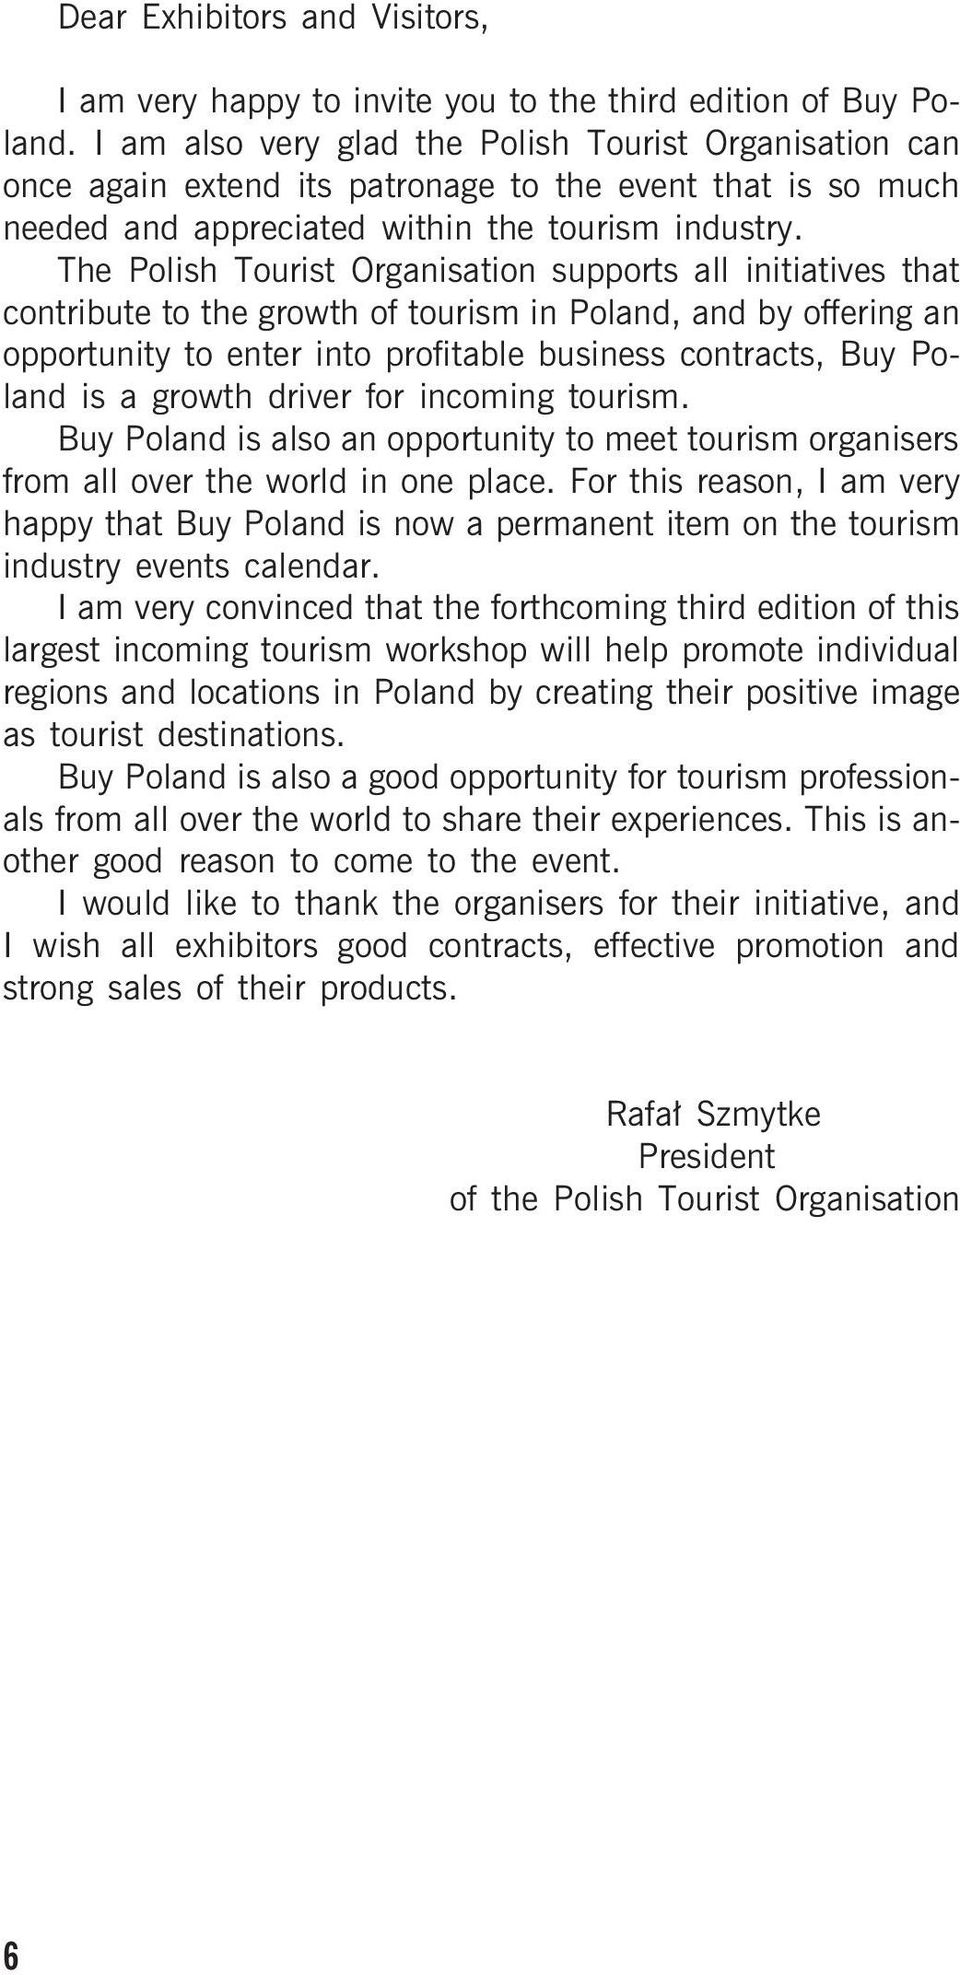 The Polish Tourist Organisation supports all initiatives that contribute to the growth of tourism in Poland, and by offering an opportunity to enter into profitable business contracts, Buy Poland is